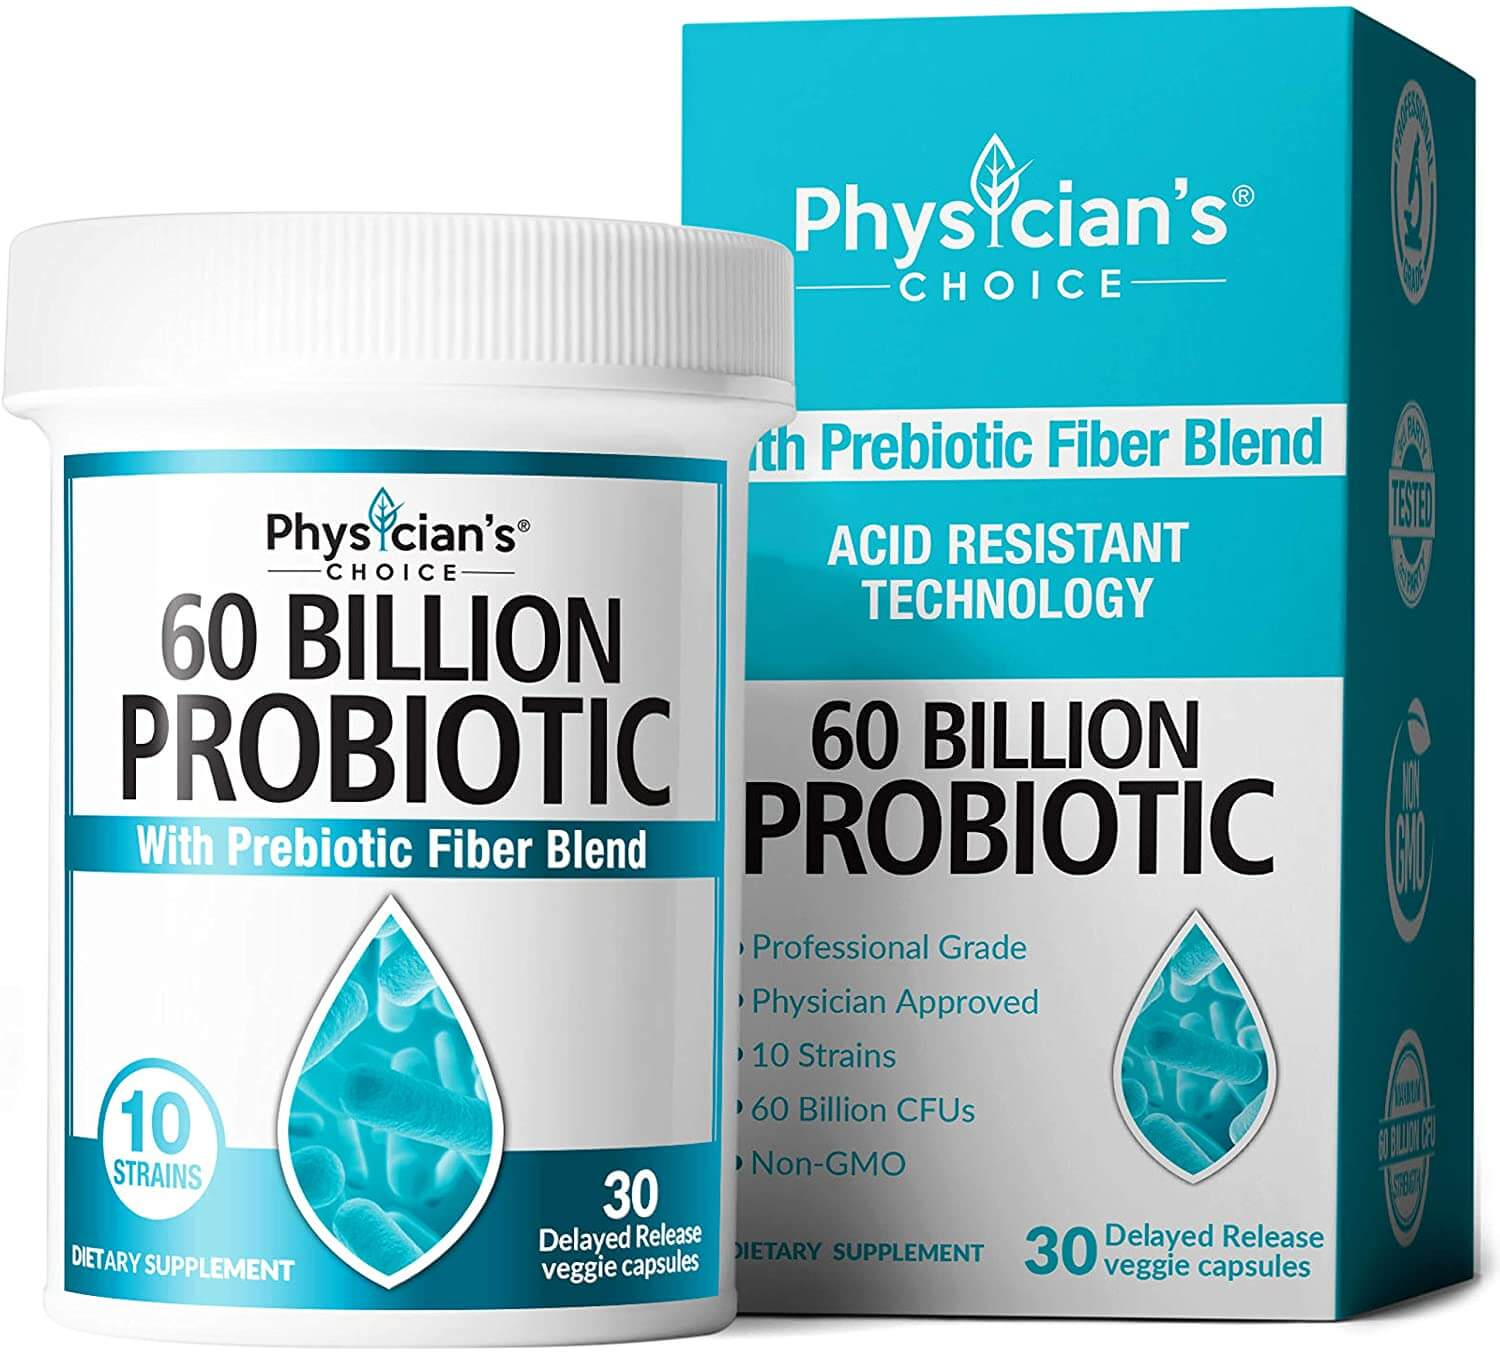 Physicians Choice Probiotic Supplement to help lose weight without exercise